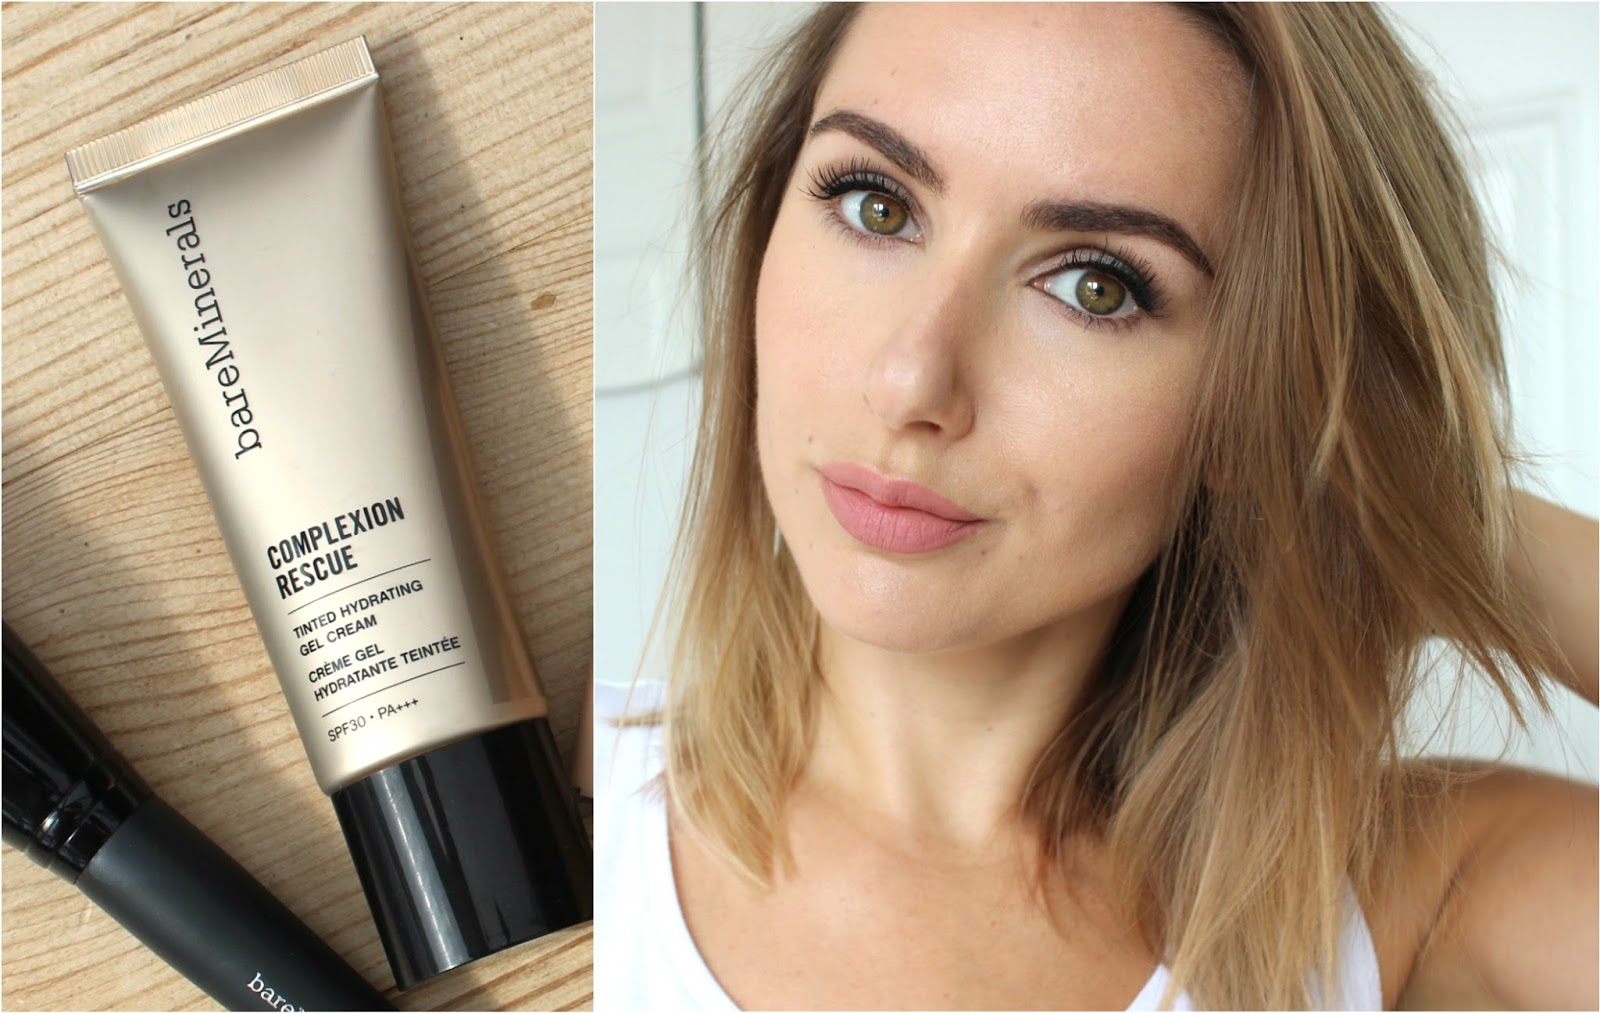 The One Thing: BareMineral's Complexion Rescue Tinted Hydrating GelCream